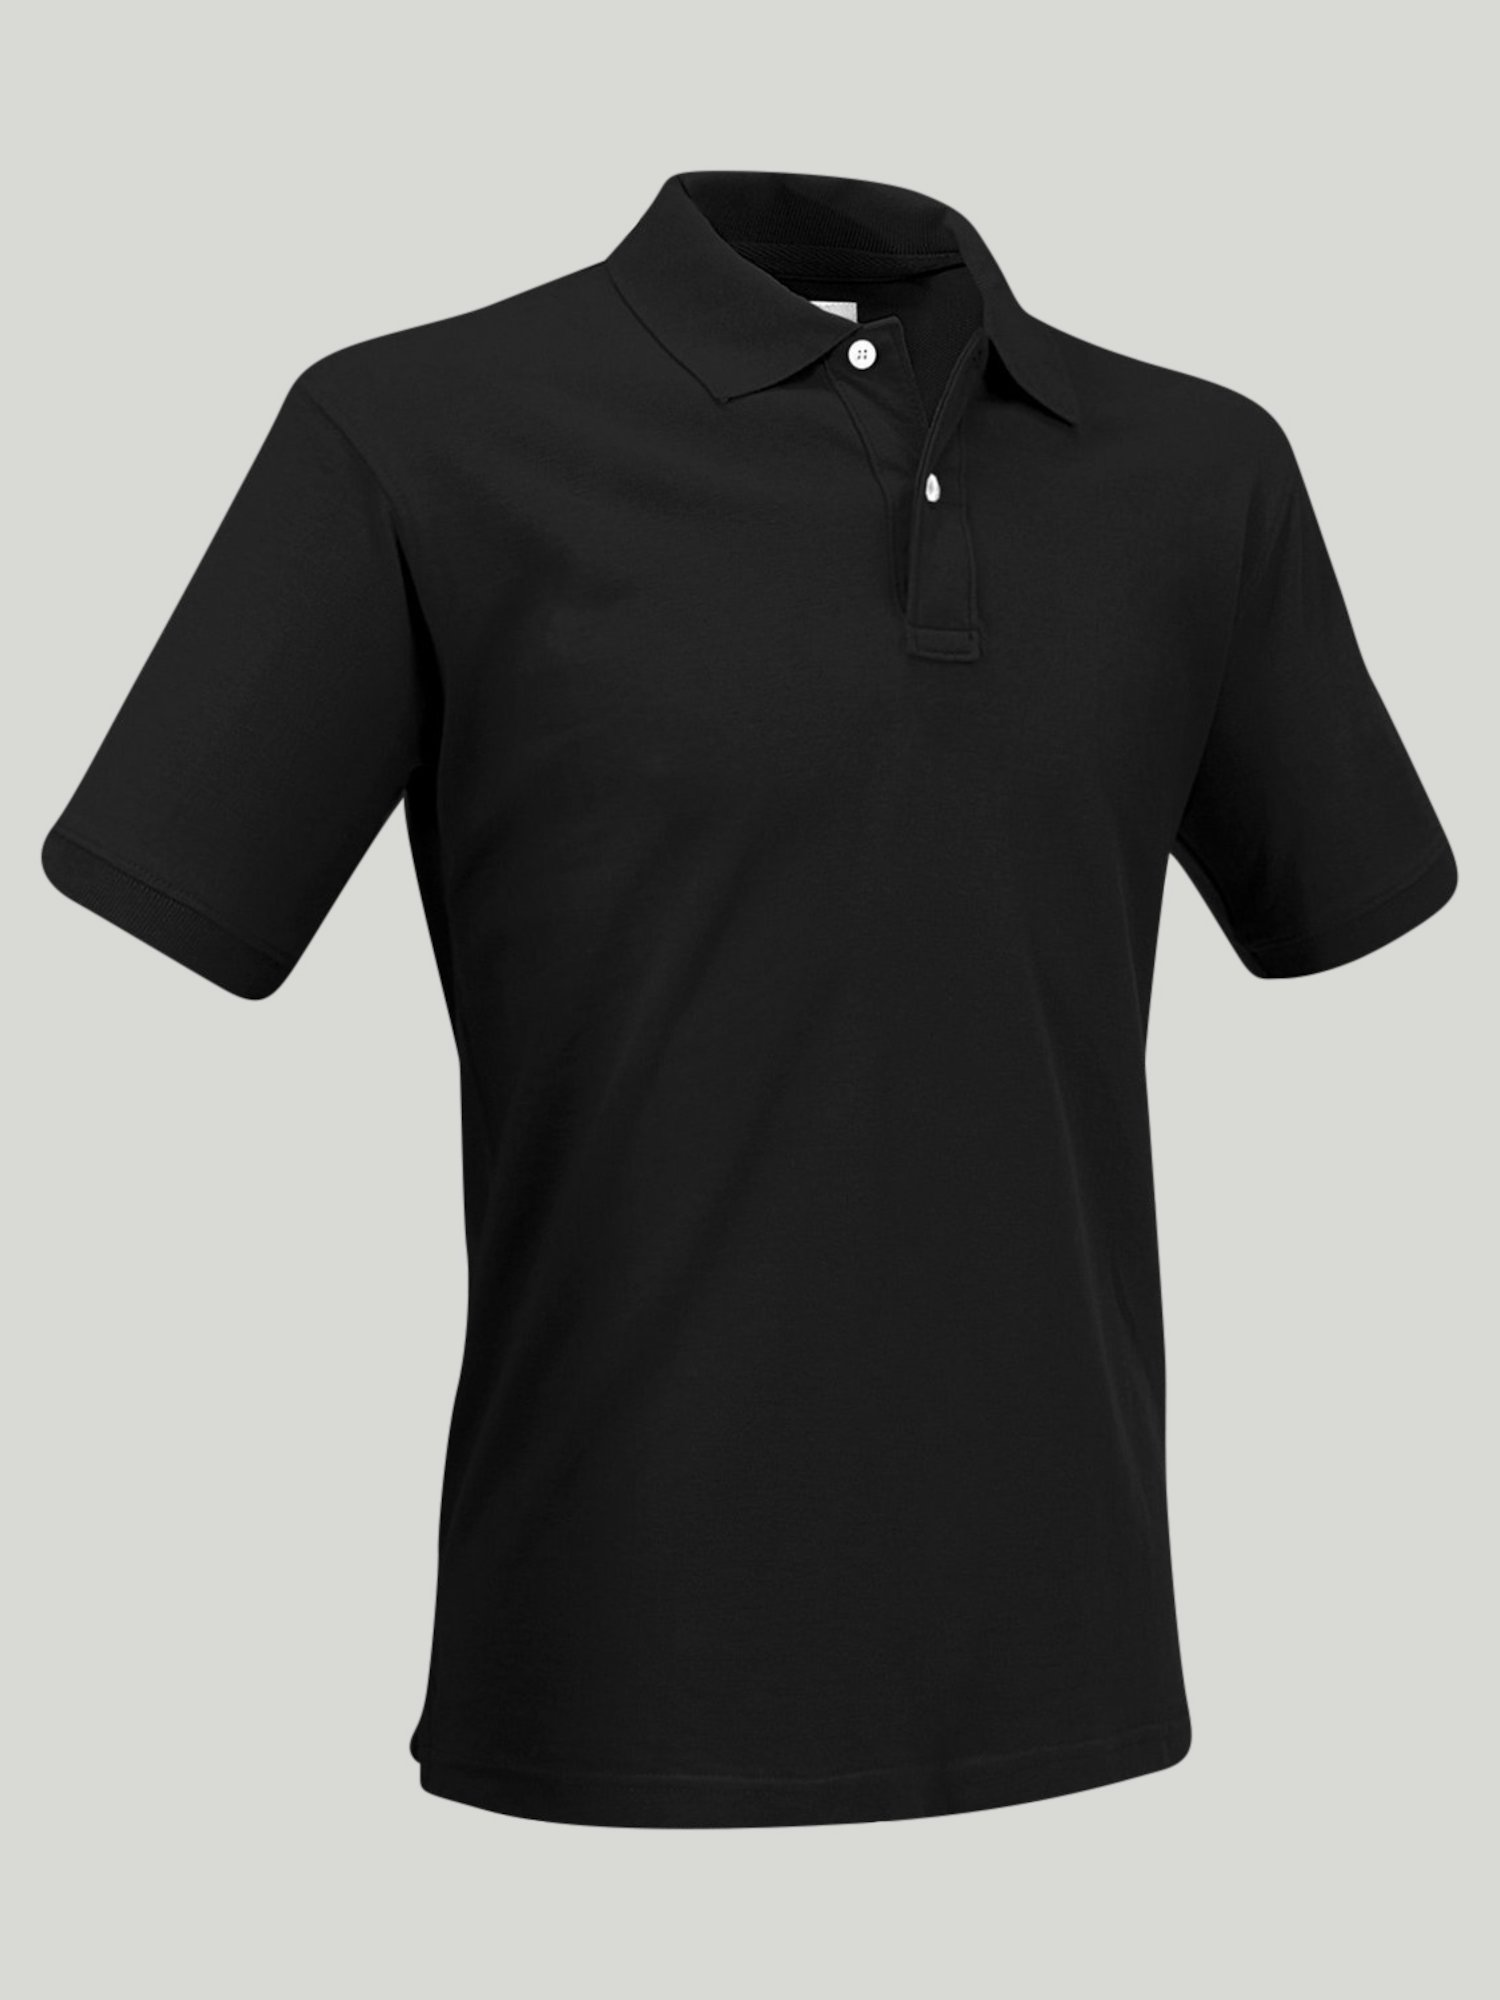 Coleman Ss New polo shirt  - Black